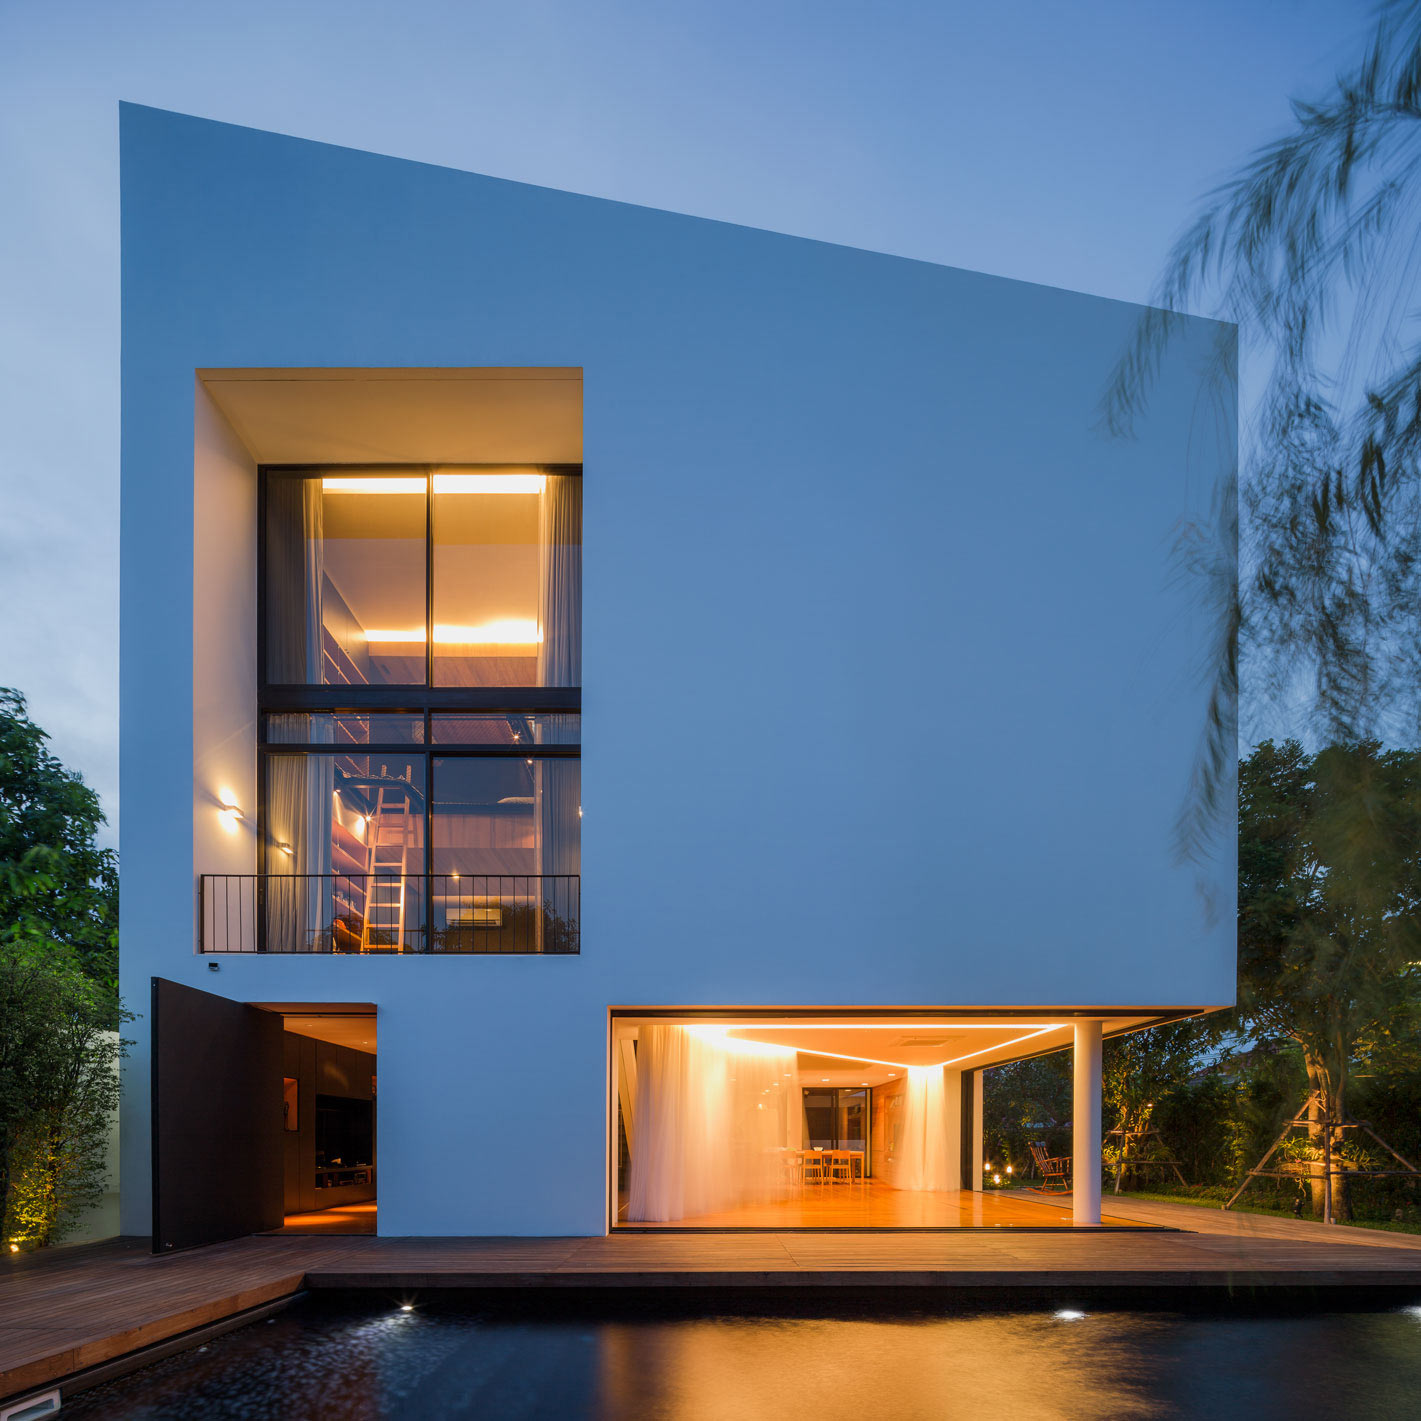 Modern White House with Integrated Angles and Corners